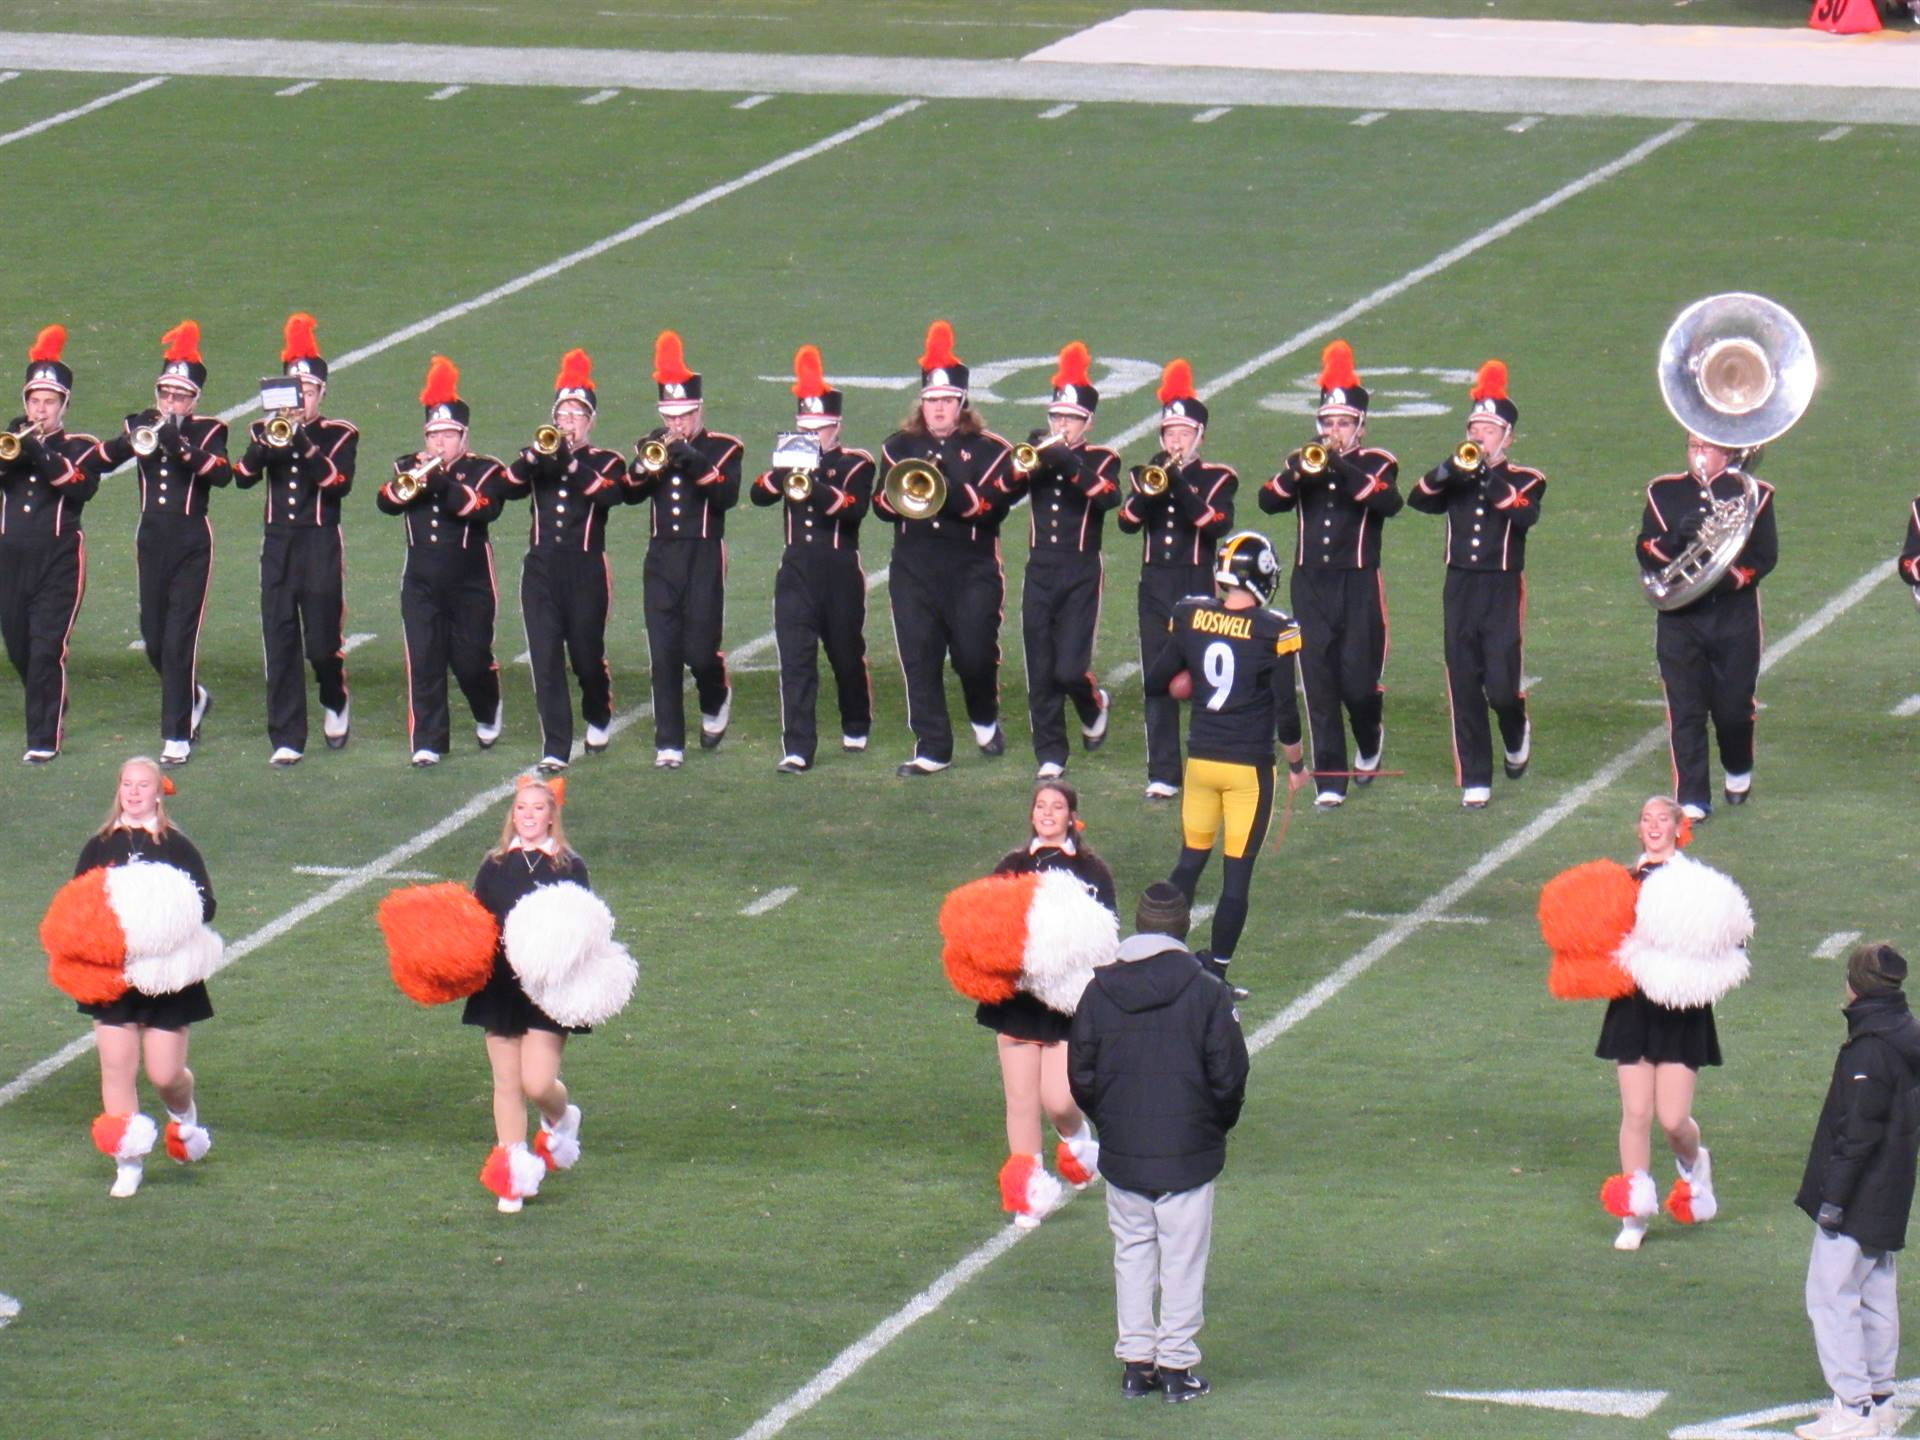 The BPHS Marching Band performs at Heinz Field for the Steelers/Ravens game